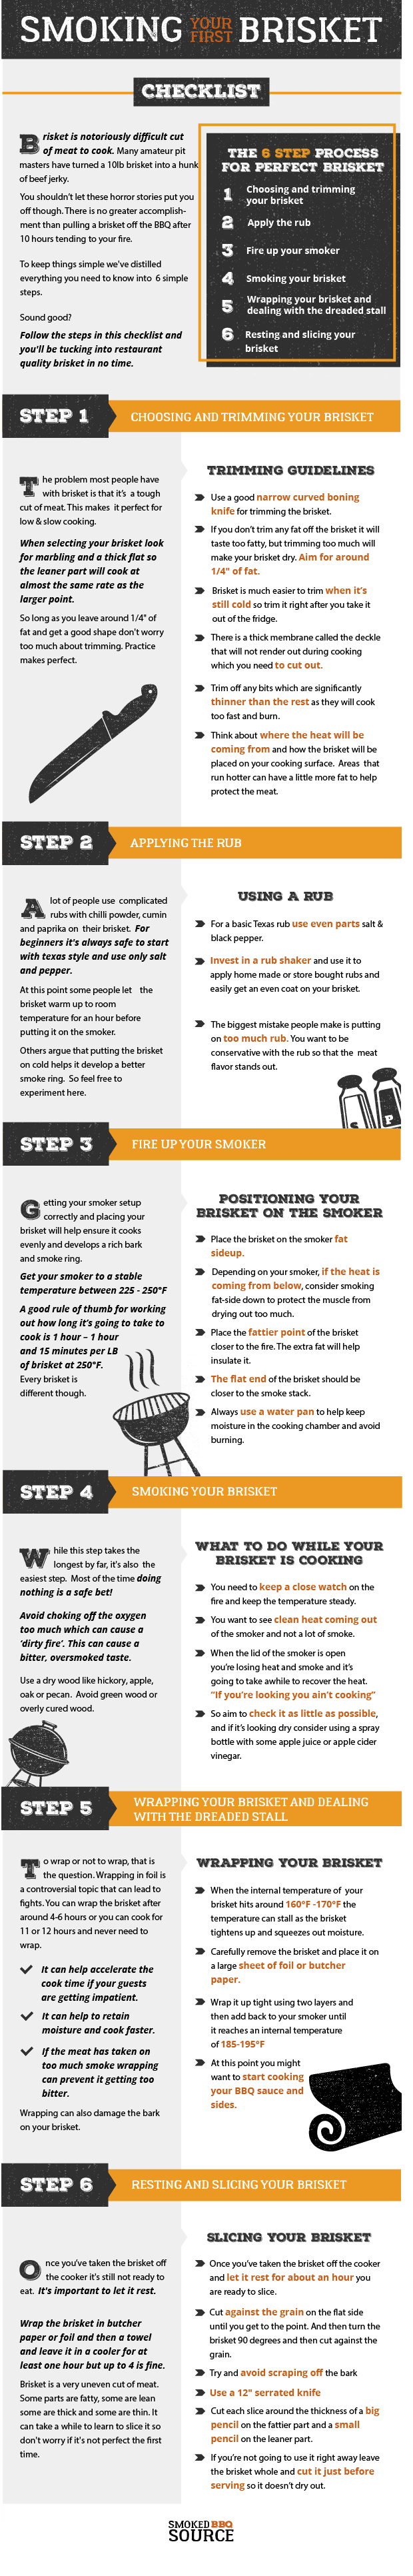 Brisket Smoking Guide - An easy to read infographic with details about how to smoke your own brisket at home.